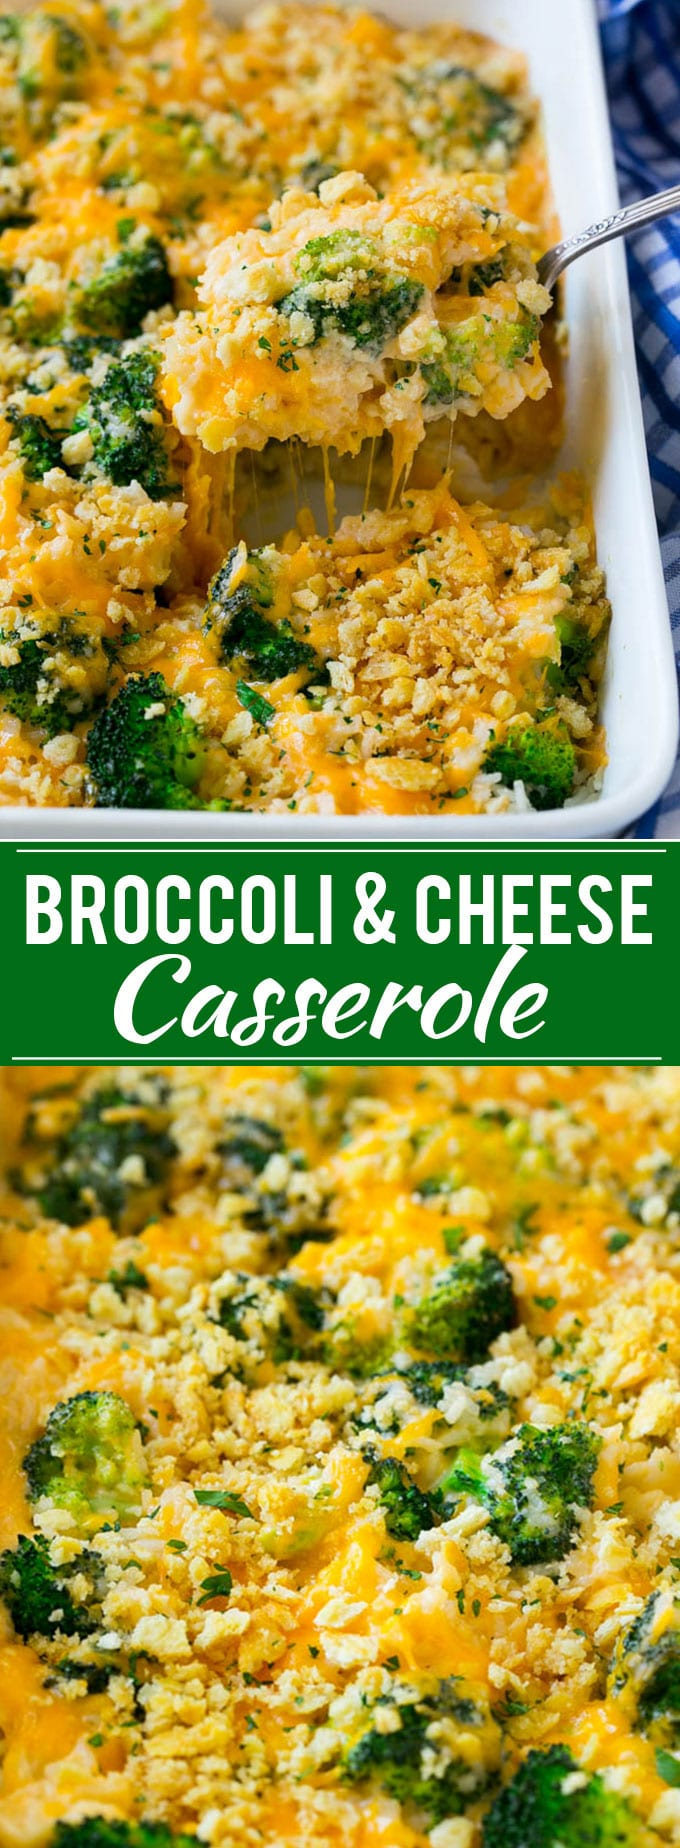 Broccoli and Cheese Casserole Recipe | Broccoli and Rice Casserole | Broccoli with Cheese | Cheesy Rice Casserole | Easy Casserole Recipe #casserole #broccoli #cheese #rice #dinner #sidedish #dinneratthezoo